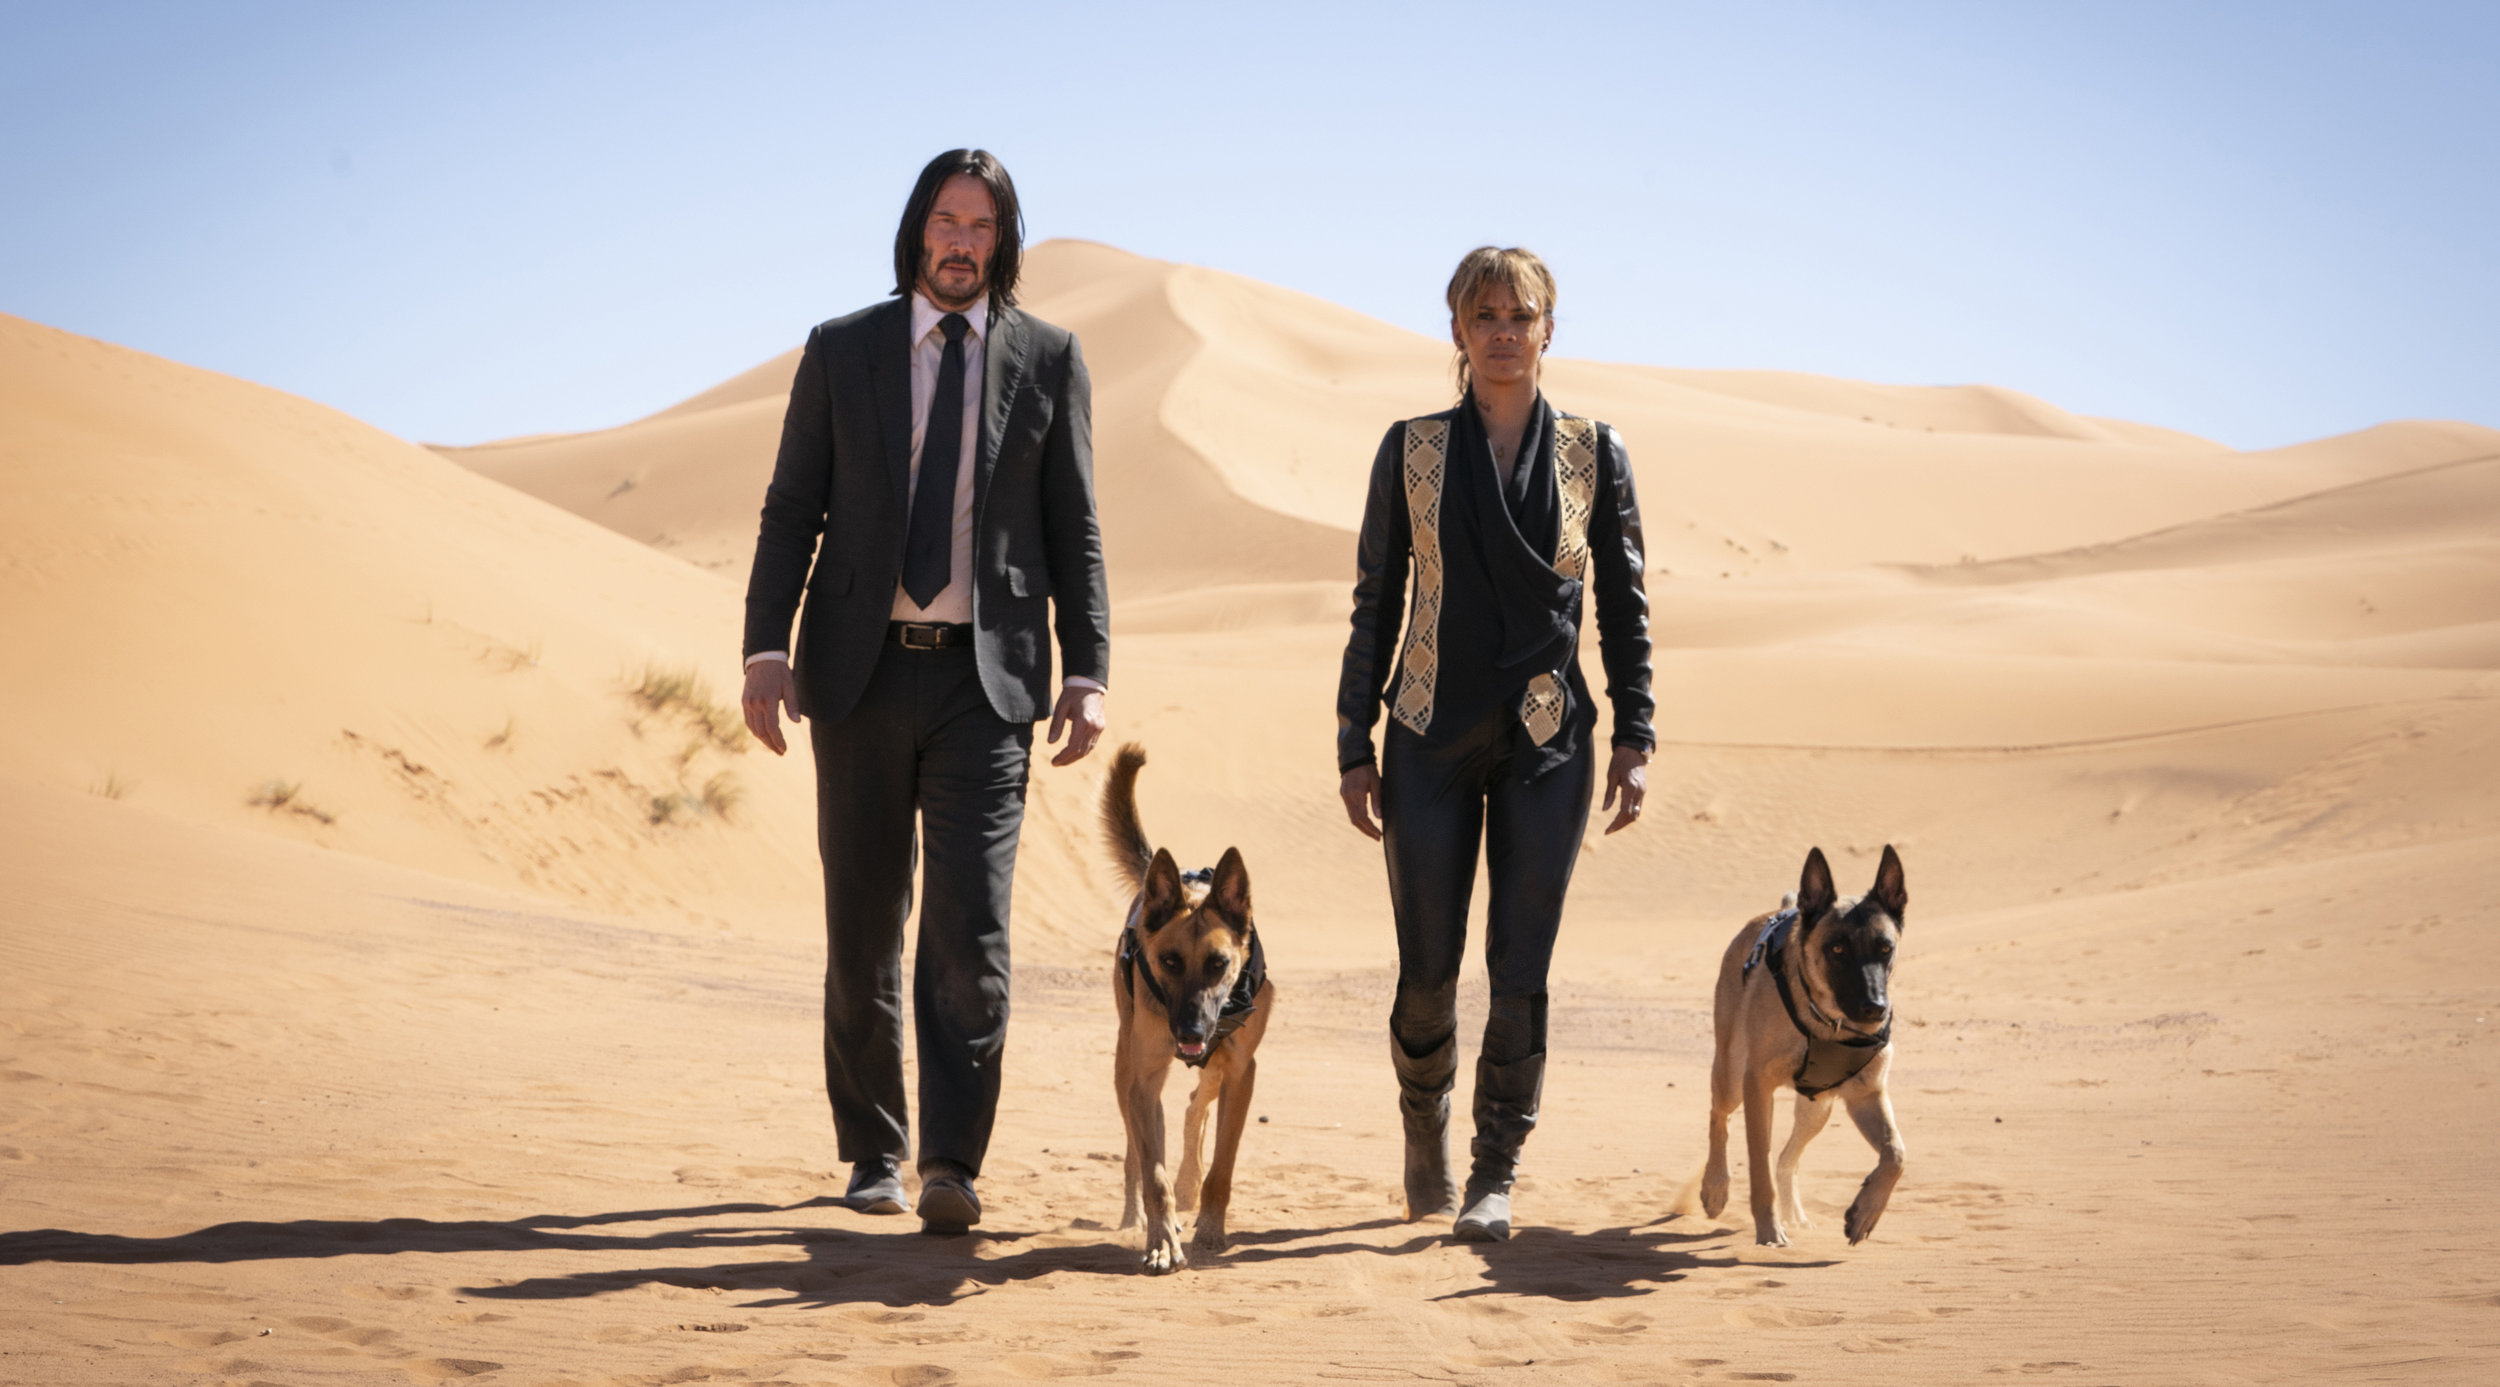 Putative good-guy assassins Keanu Reeves and Halle Berry (and dogs) looking for answers in a dry place